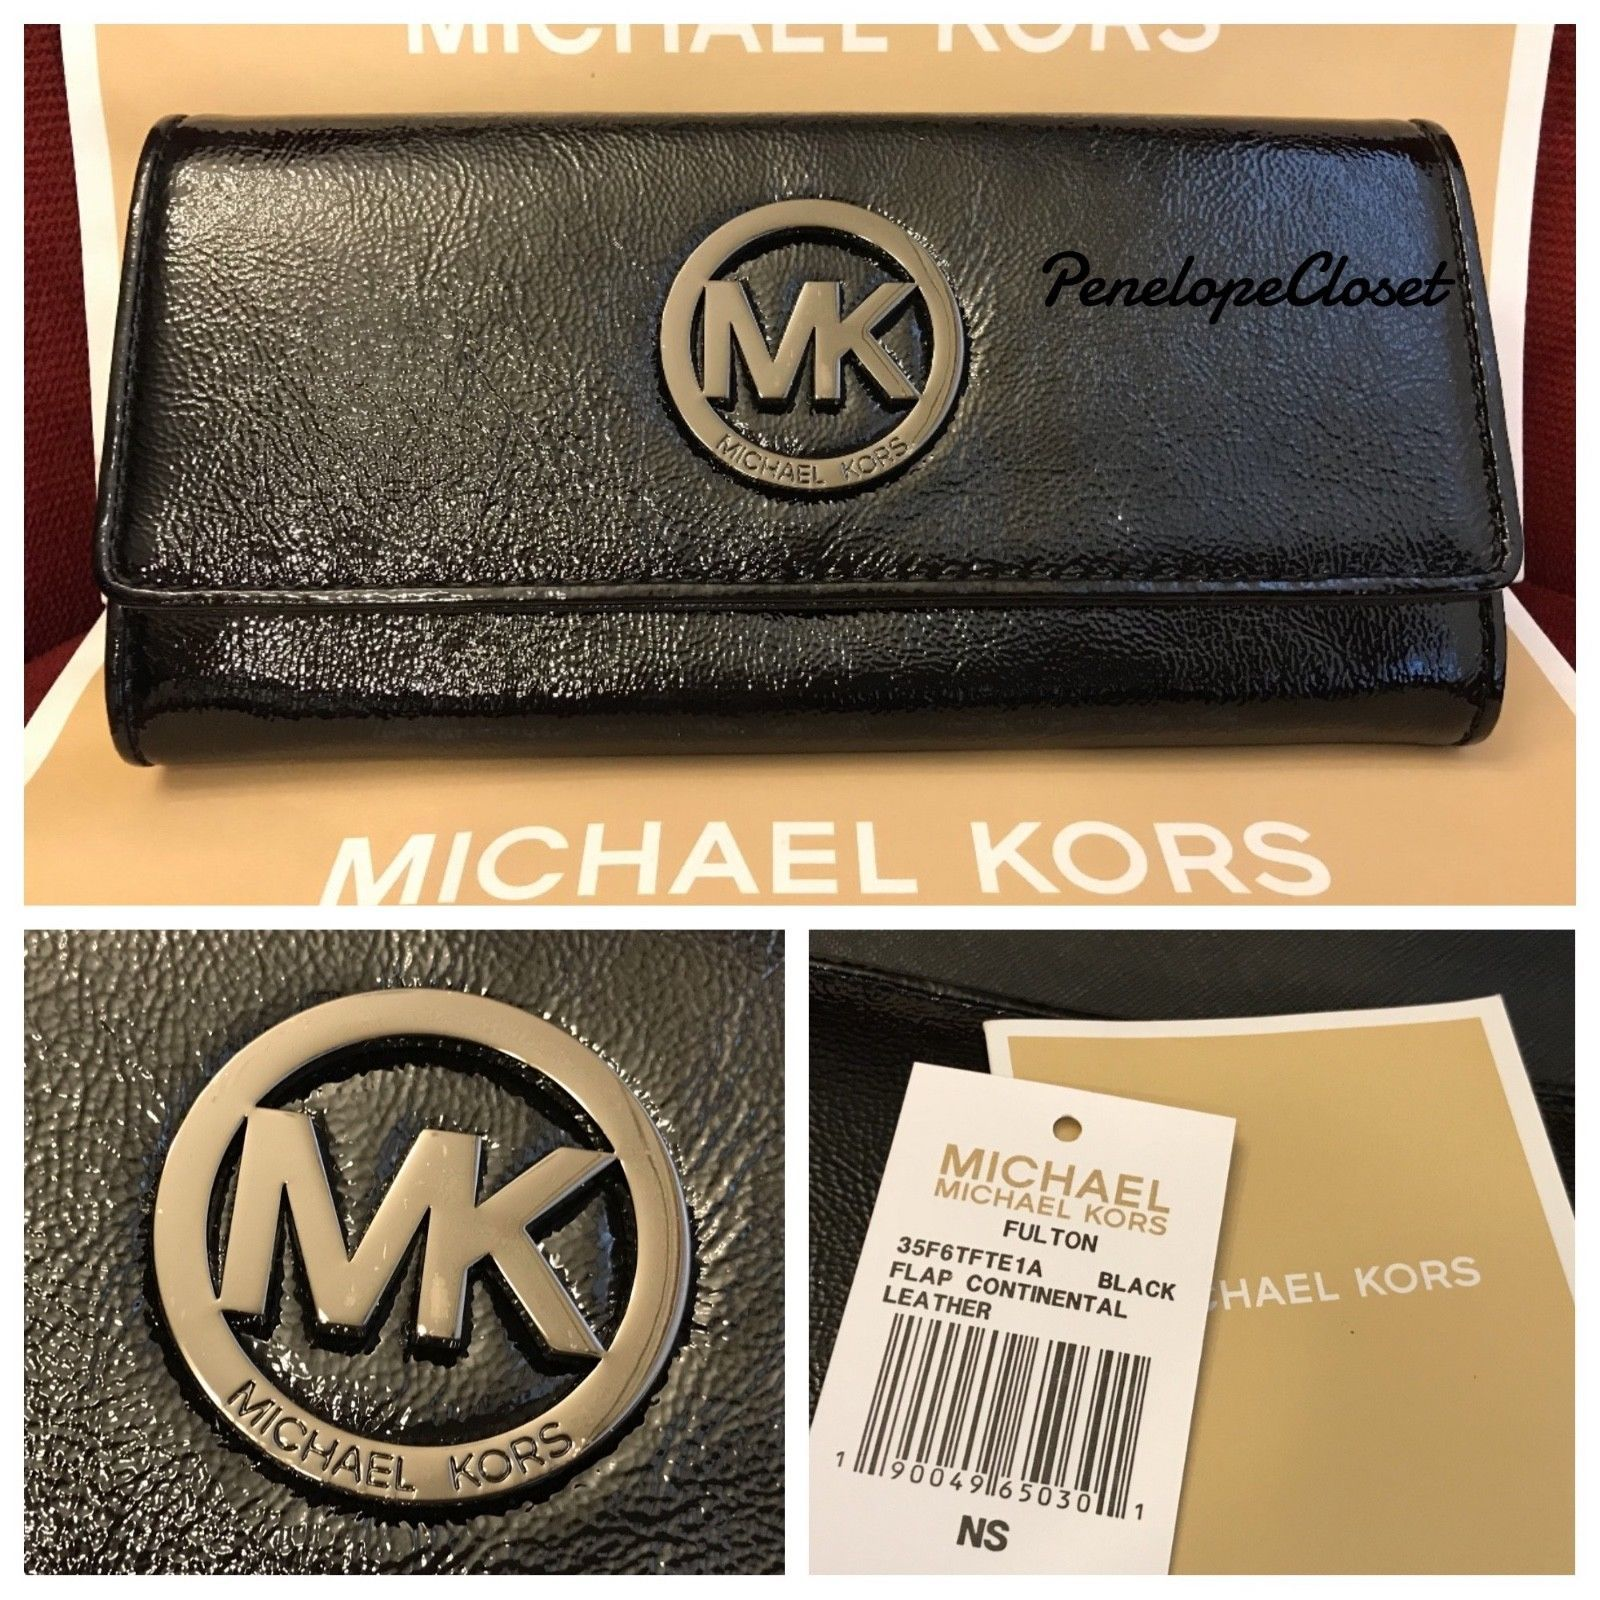 cffe8fc11091 S l1600. S l1600. Previous. NWT MICHAEL KORS PATENT LEATHER FULTON FLAP  CONTINENTAL WALLET IN BLACK